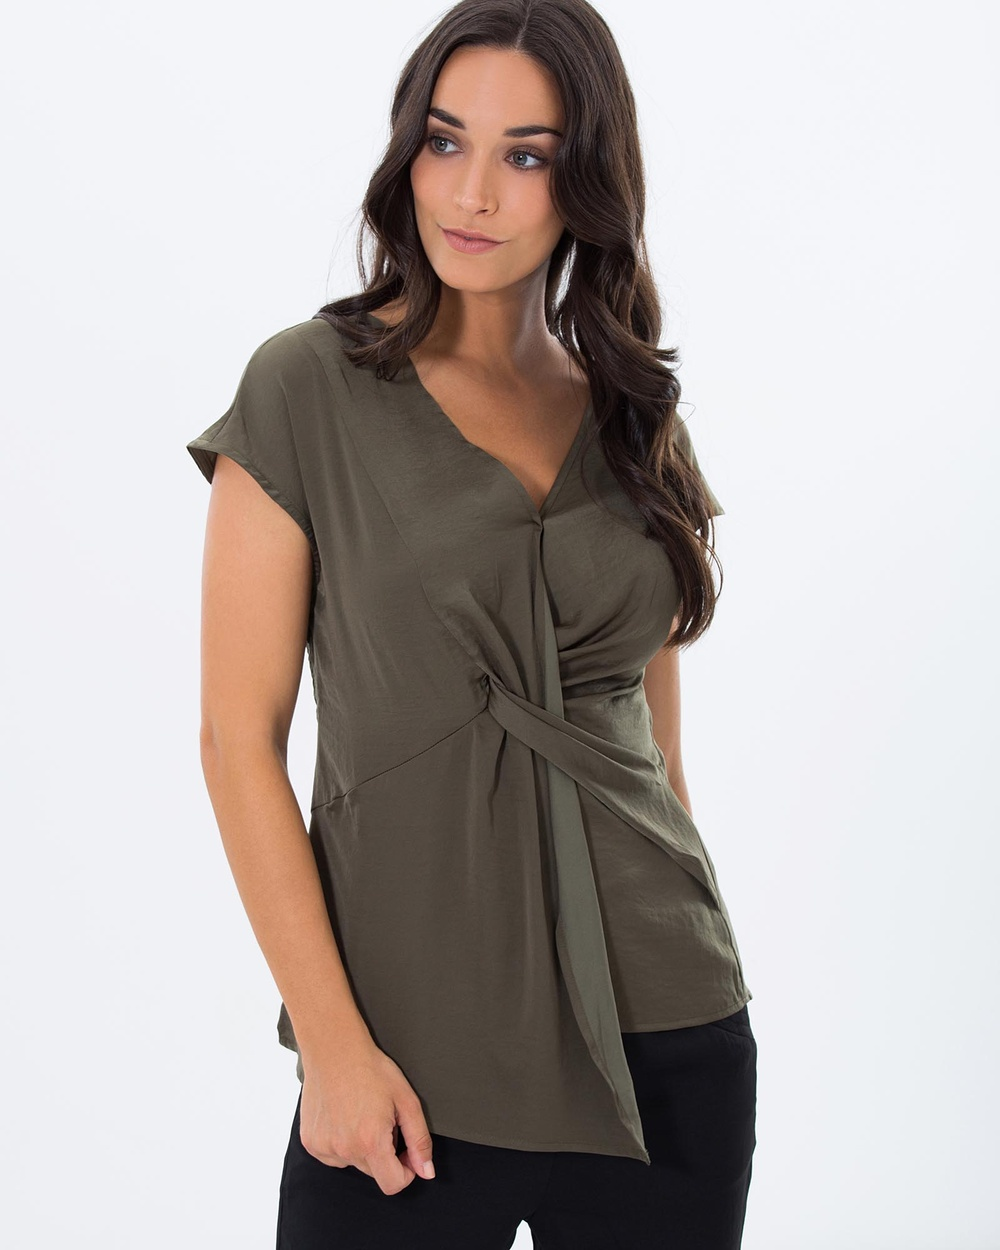 Privilege Hamilton Twist Top Tops Olive Hamilton Twist Top